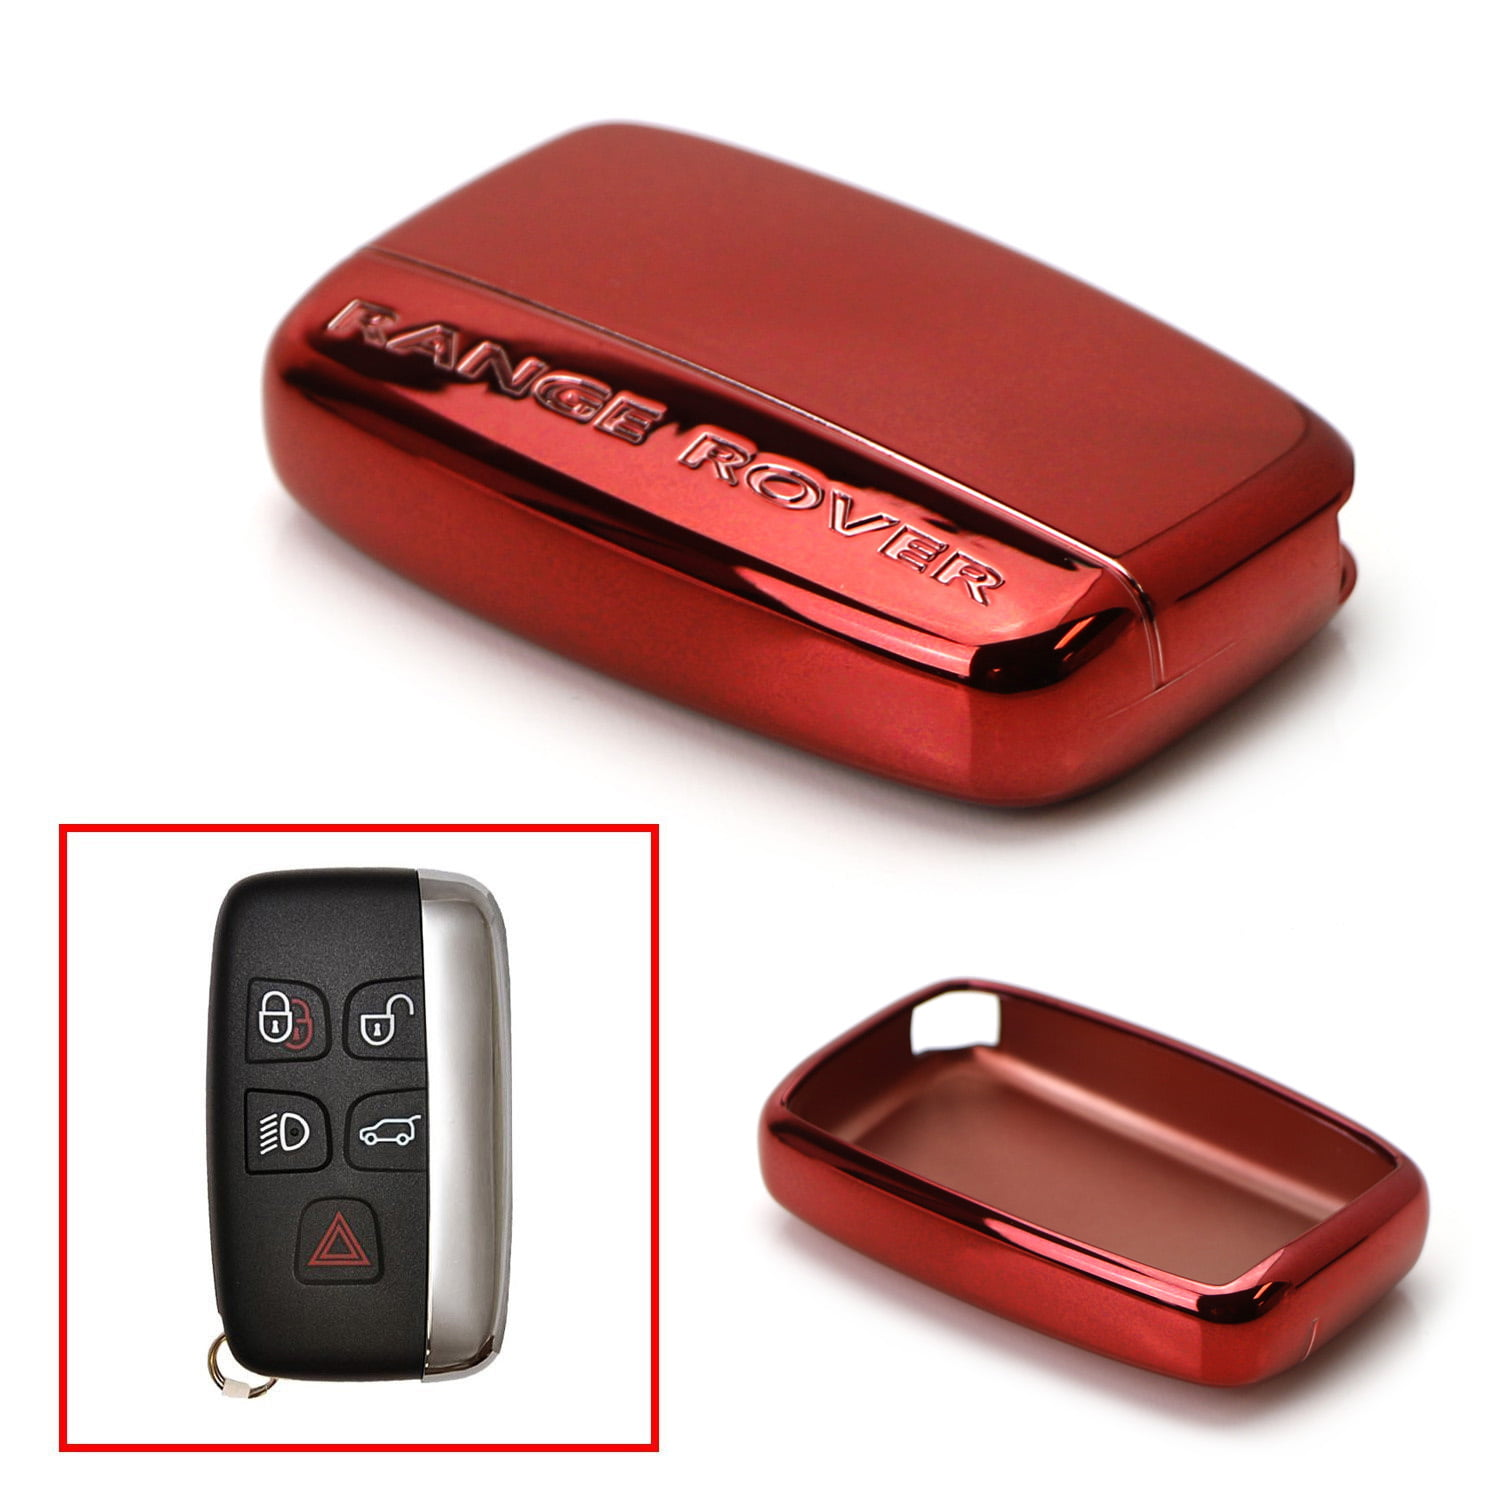 Leather 5 Buttons TPU Smart keyless Entry Remote Key Fob case Cover for 2018 2019 Land Rover Range Rover Sport Evoque Velar Discovery 5 TM Royalfox